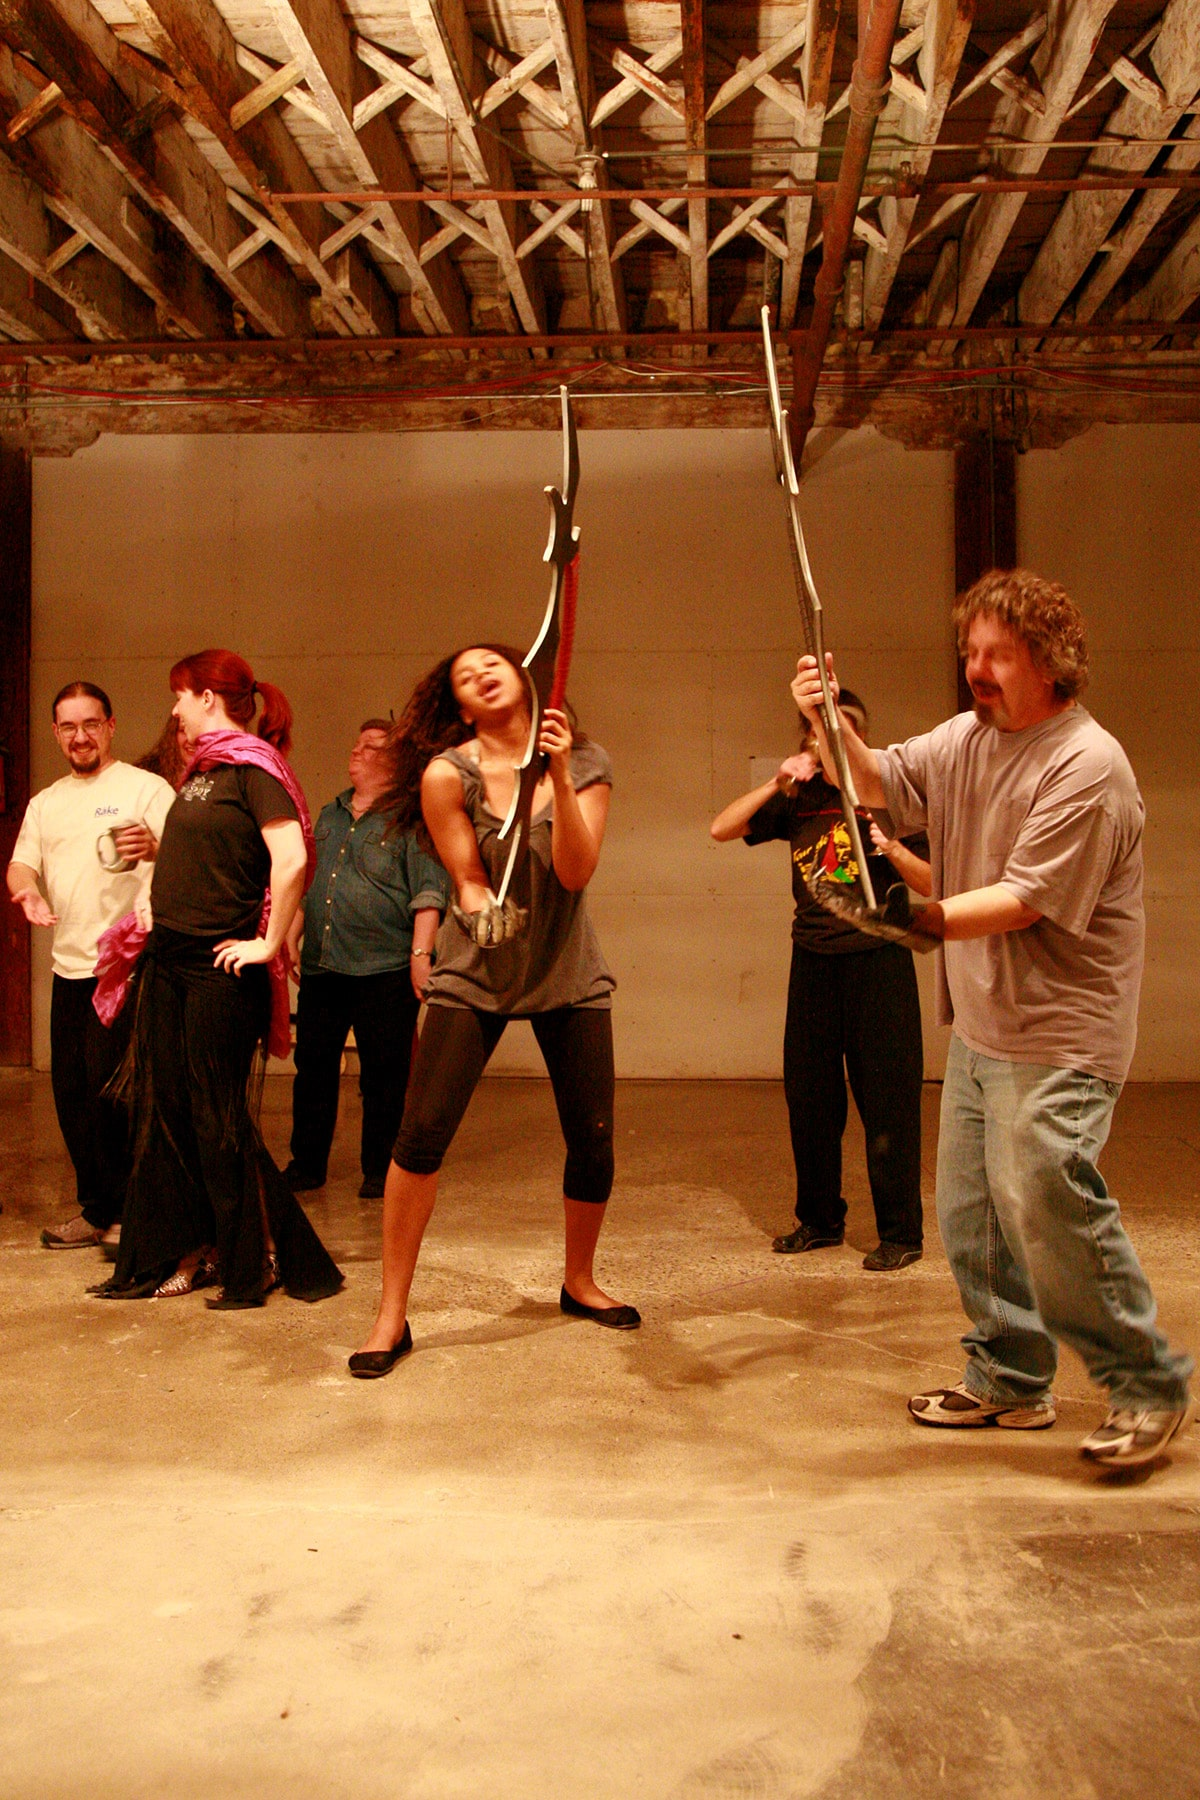 A group of actors practicing with Bat'leths.